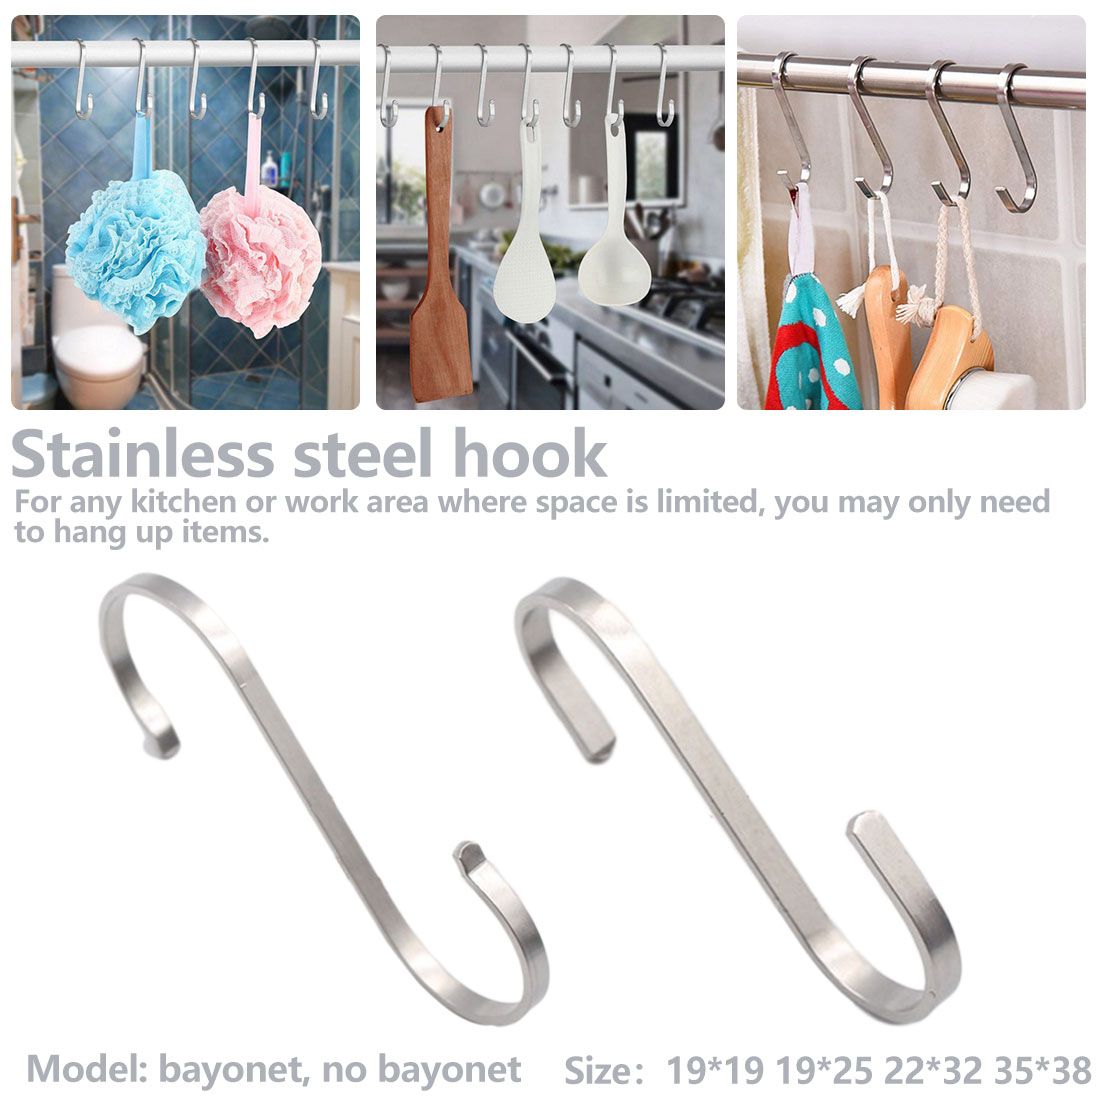 1pc S-shaped Hook Stainless Steel  Buckle Ring Frame Kitchen Pot Clothing Hook Flat Hook